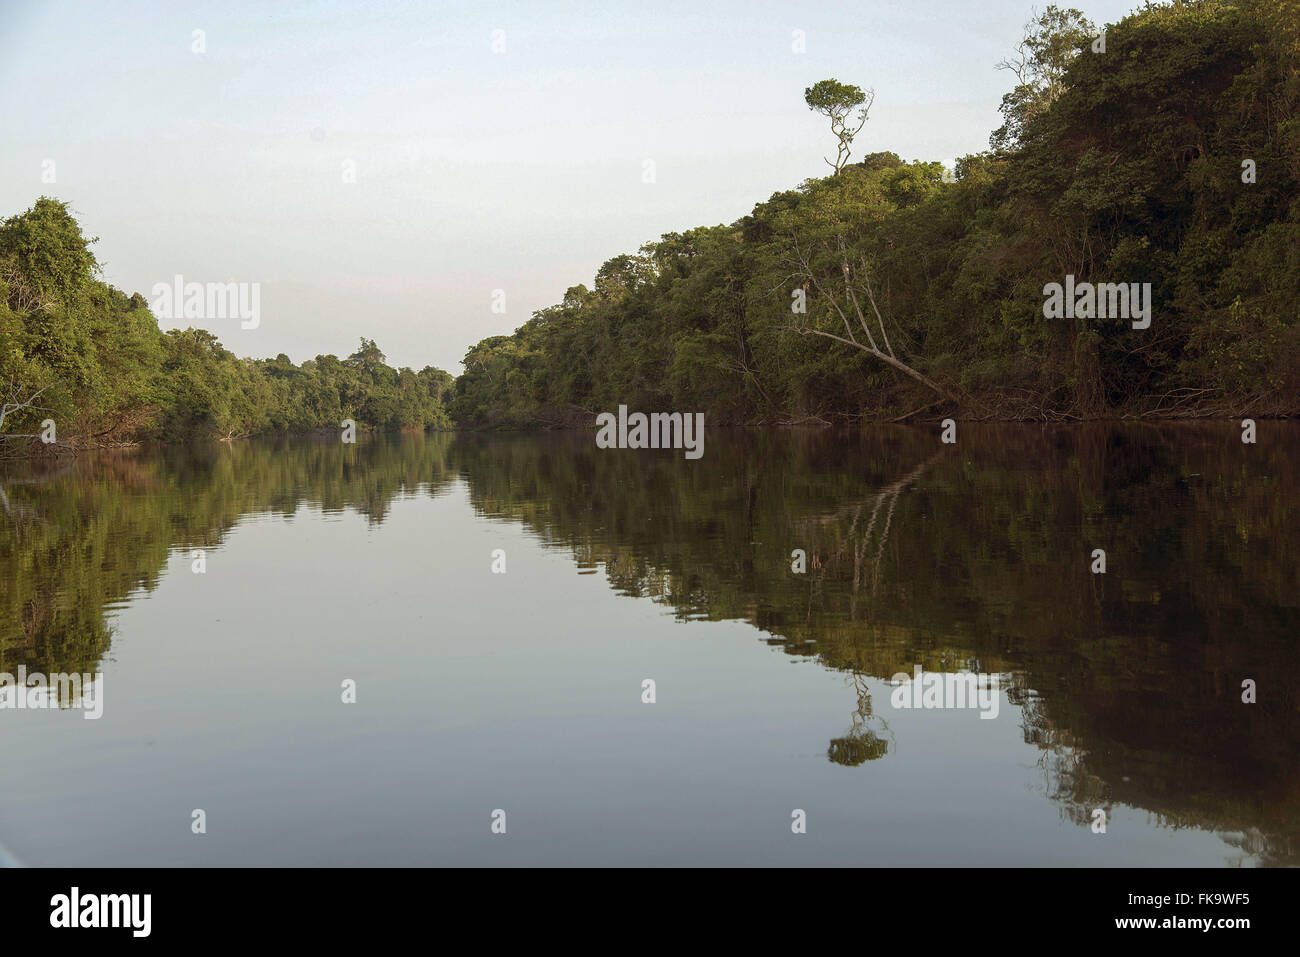 Bank and riparian vegetation of the Rio Cristalino - Stock Image